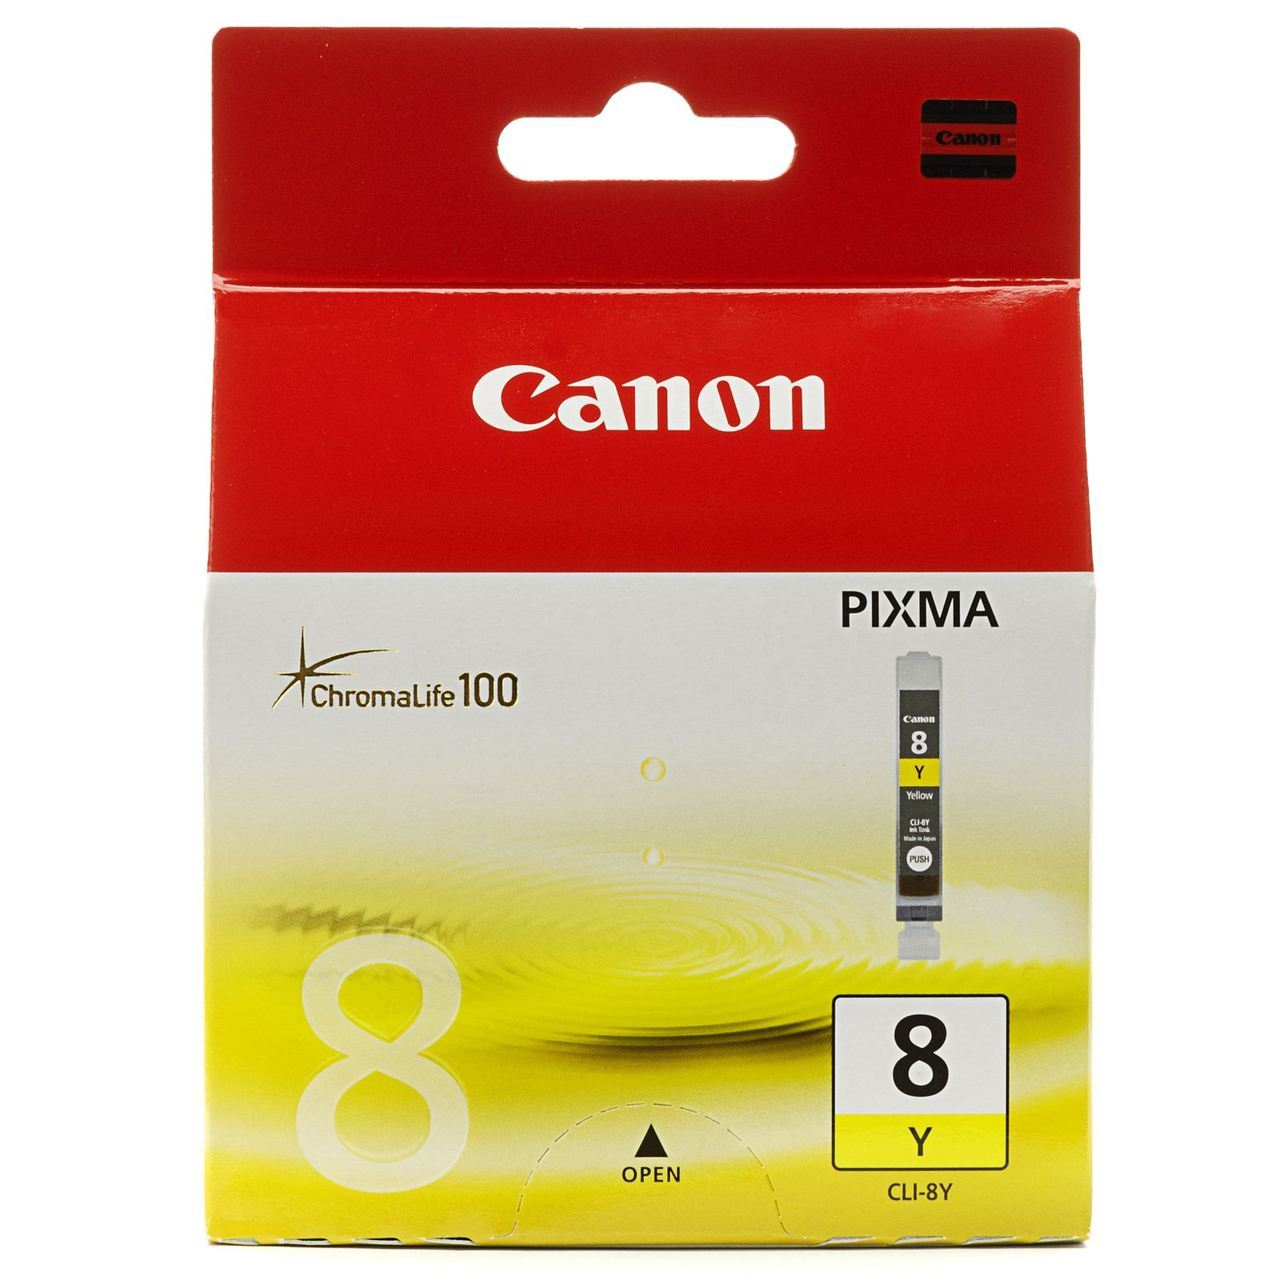 PIXMA iP4500 CLI-8Y Yellow Ink Cartridge (13ml - 300 pages*)